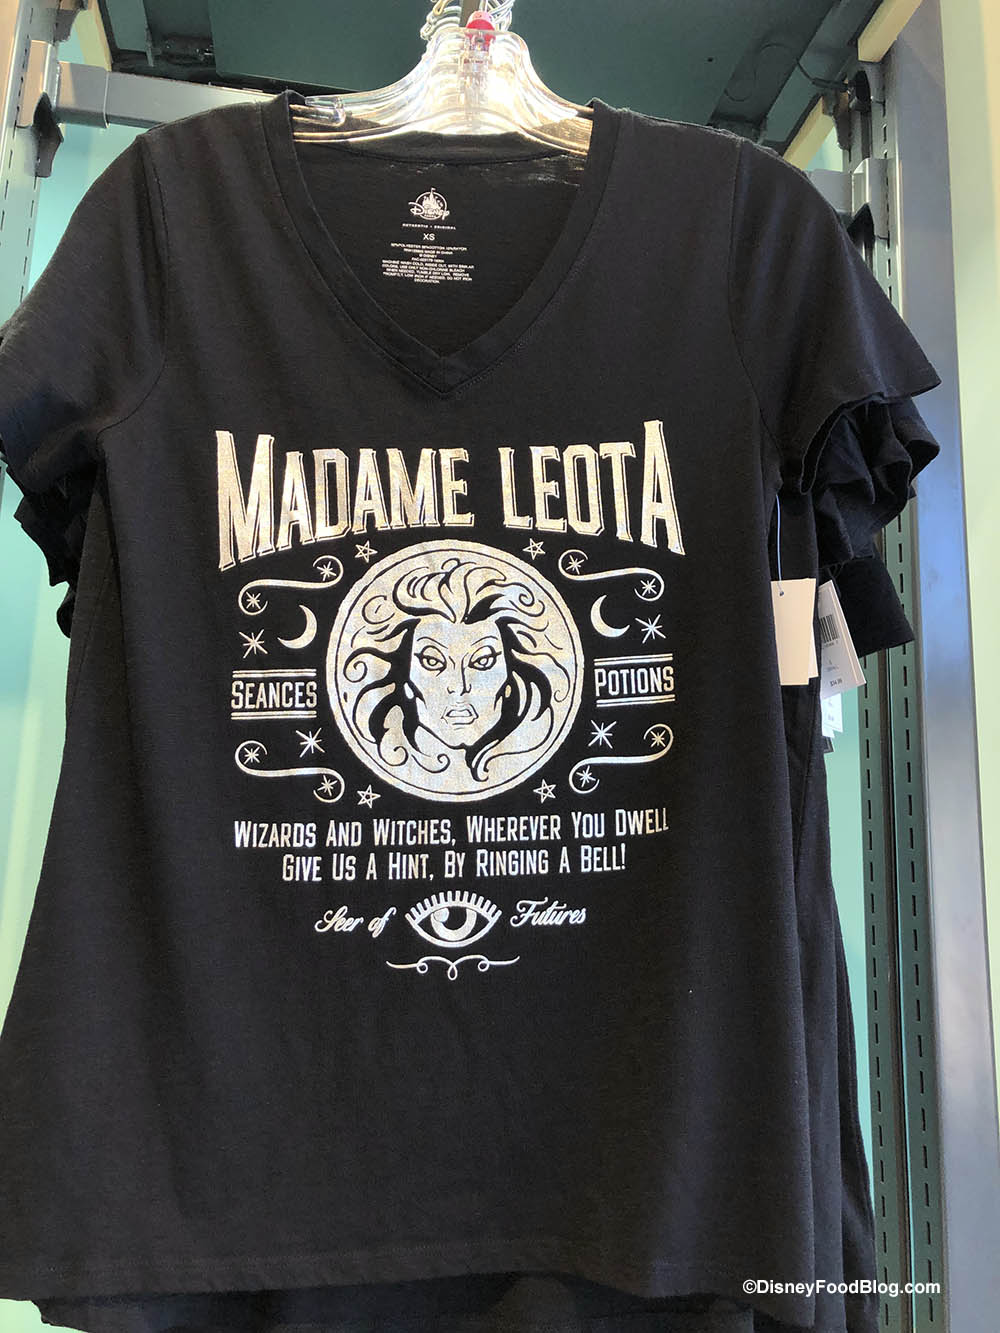 95550a259 Spotted! MORE Vintage Attraction Shirts in Disney Springs | the ...